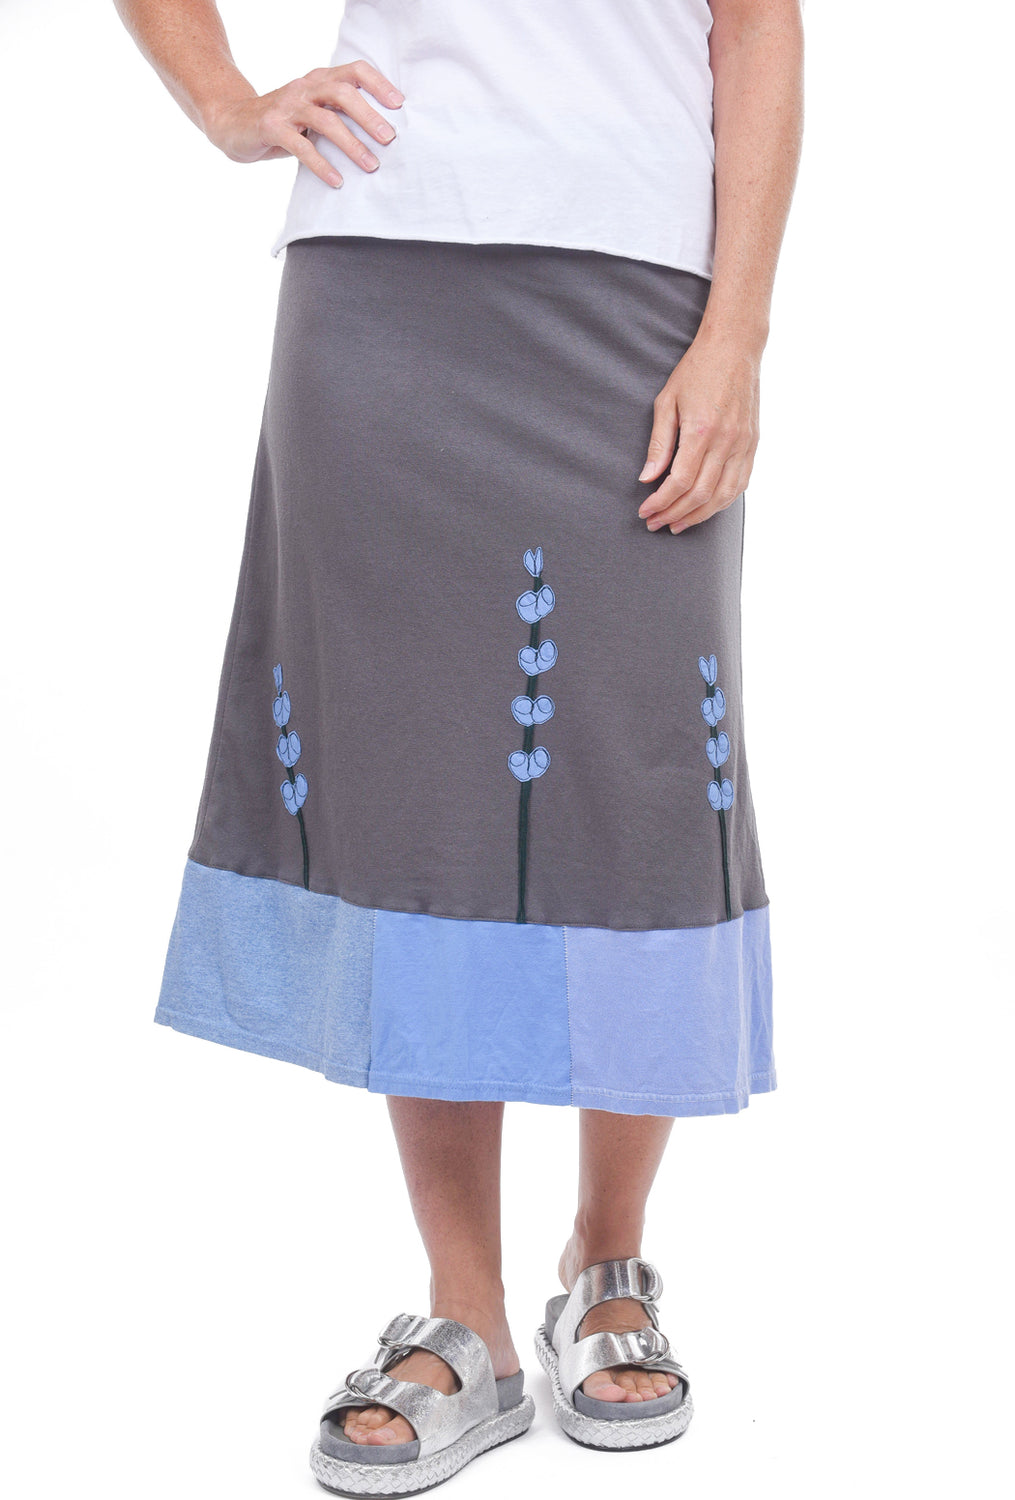 Sardine Clothing Company Longer Recycled Tee Skirt, Gray Lupine